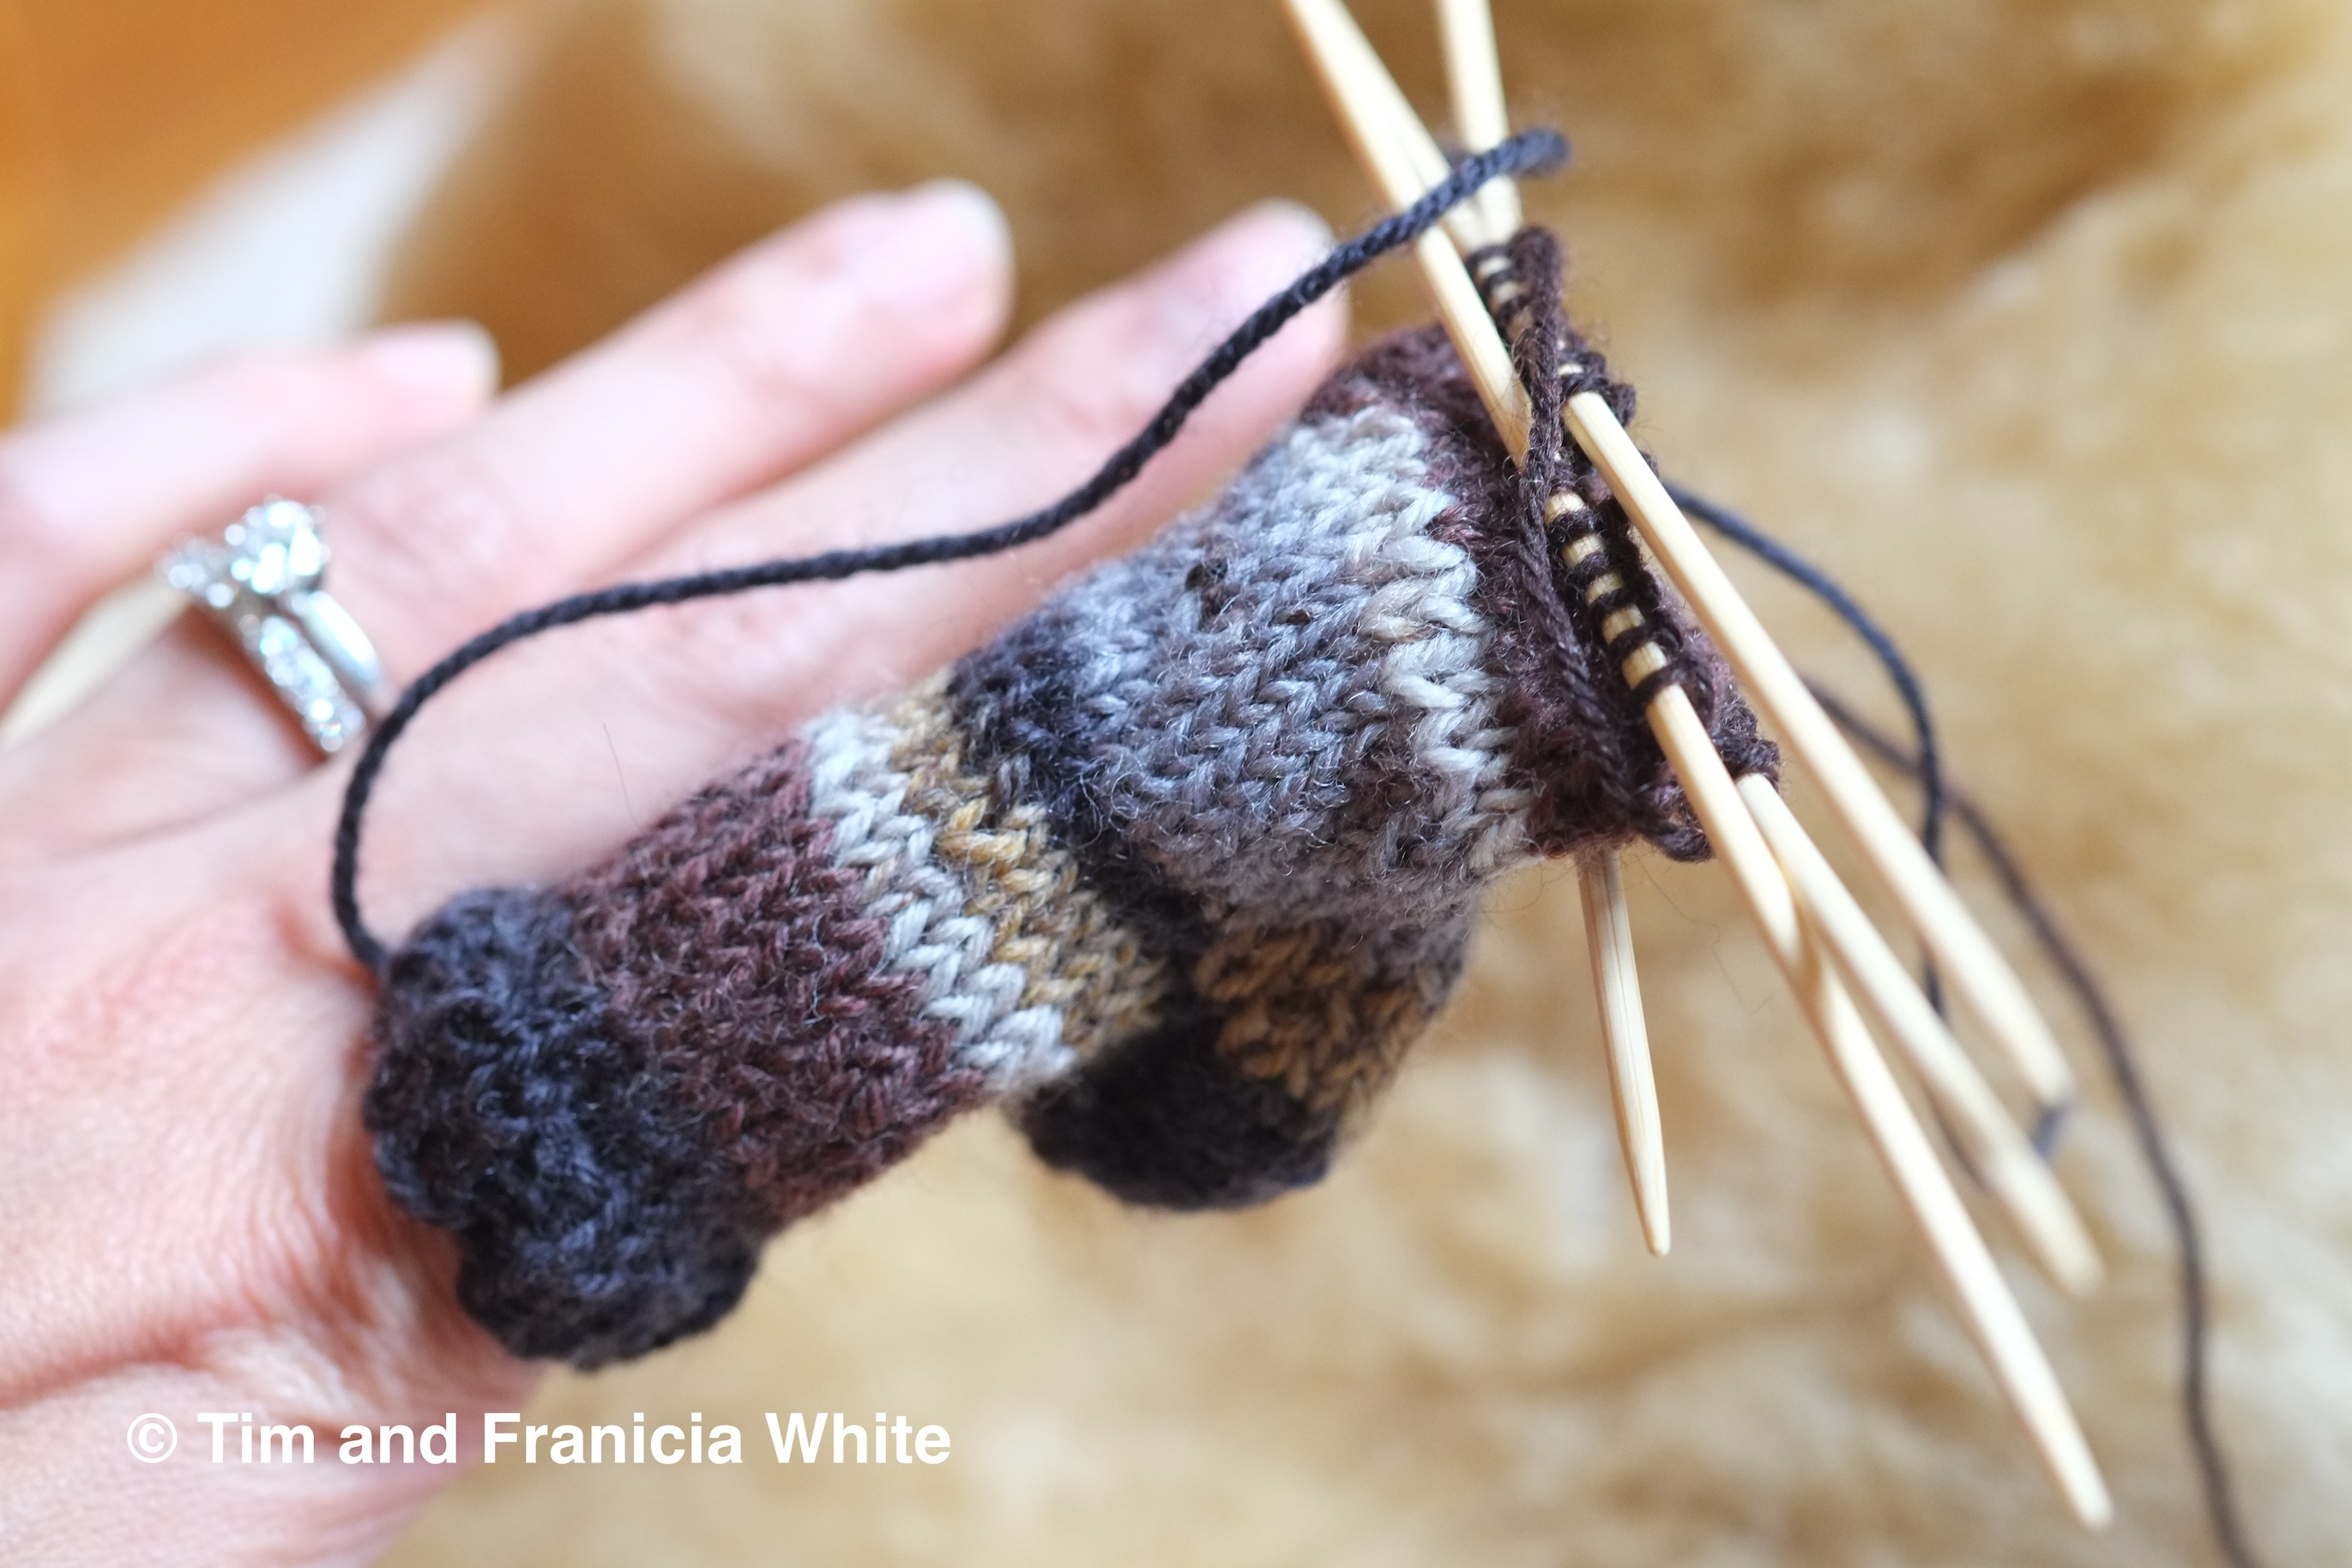 Knit Baby Socks – Learn How to Knit Baby Socks and Other Fun Projects